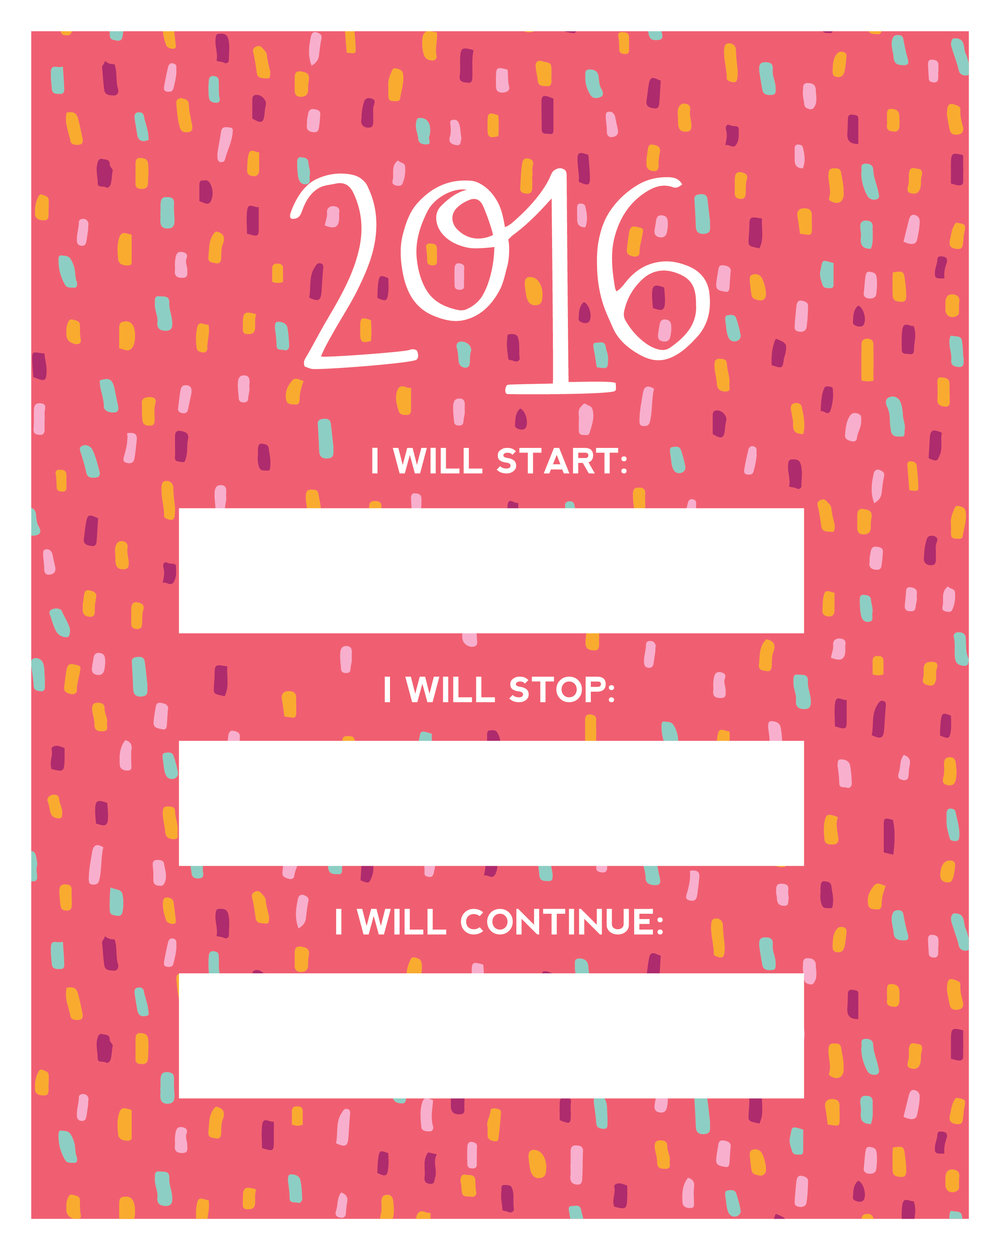 2016 simple new year's resolutions printable